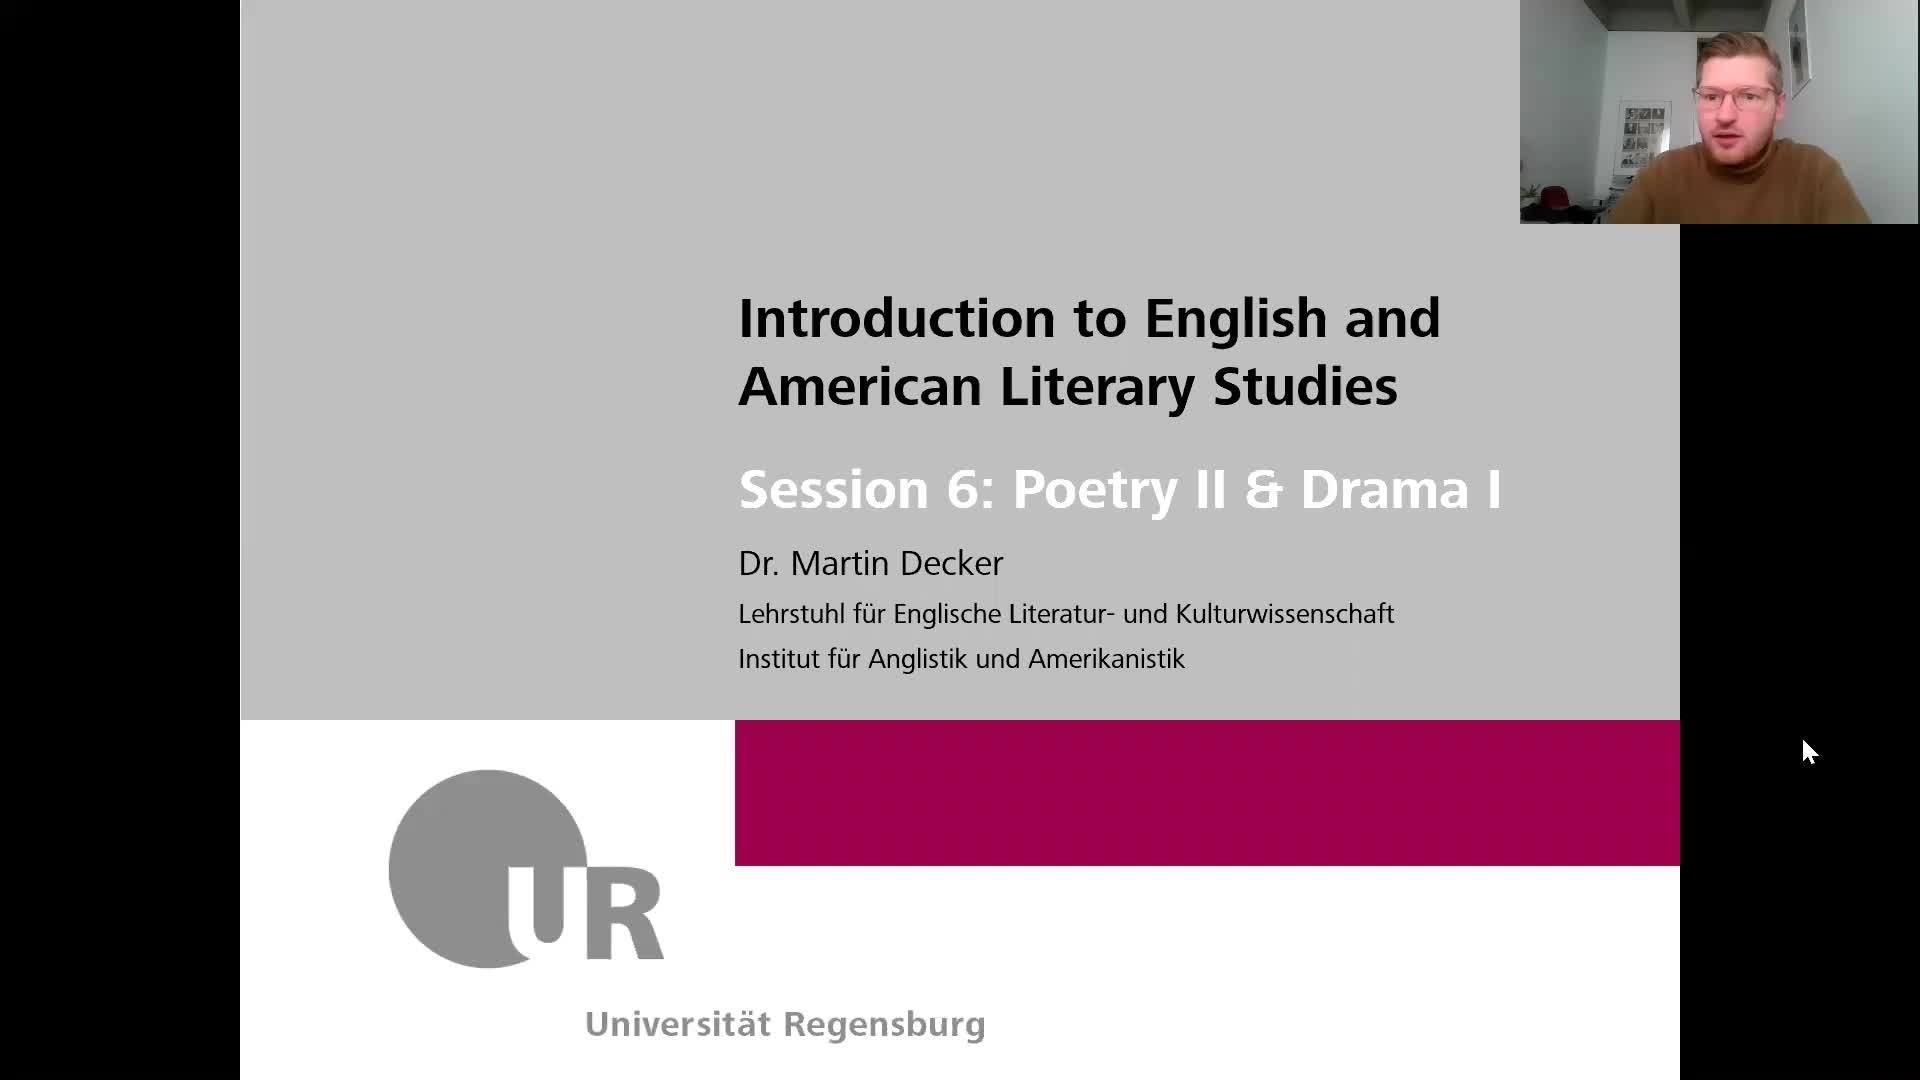 Introduction to English and American Literary Studies - LECTURE - Session 6